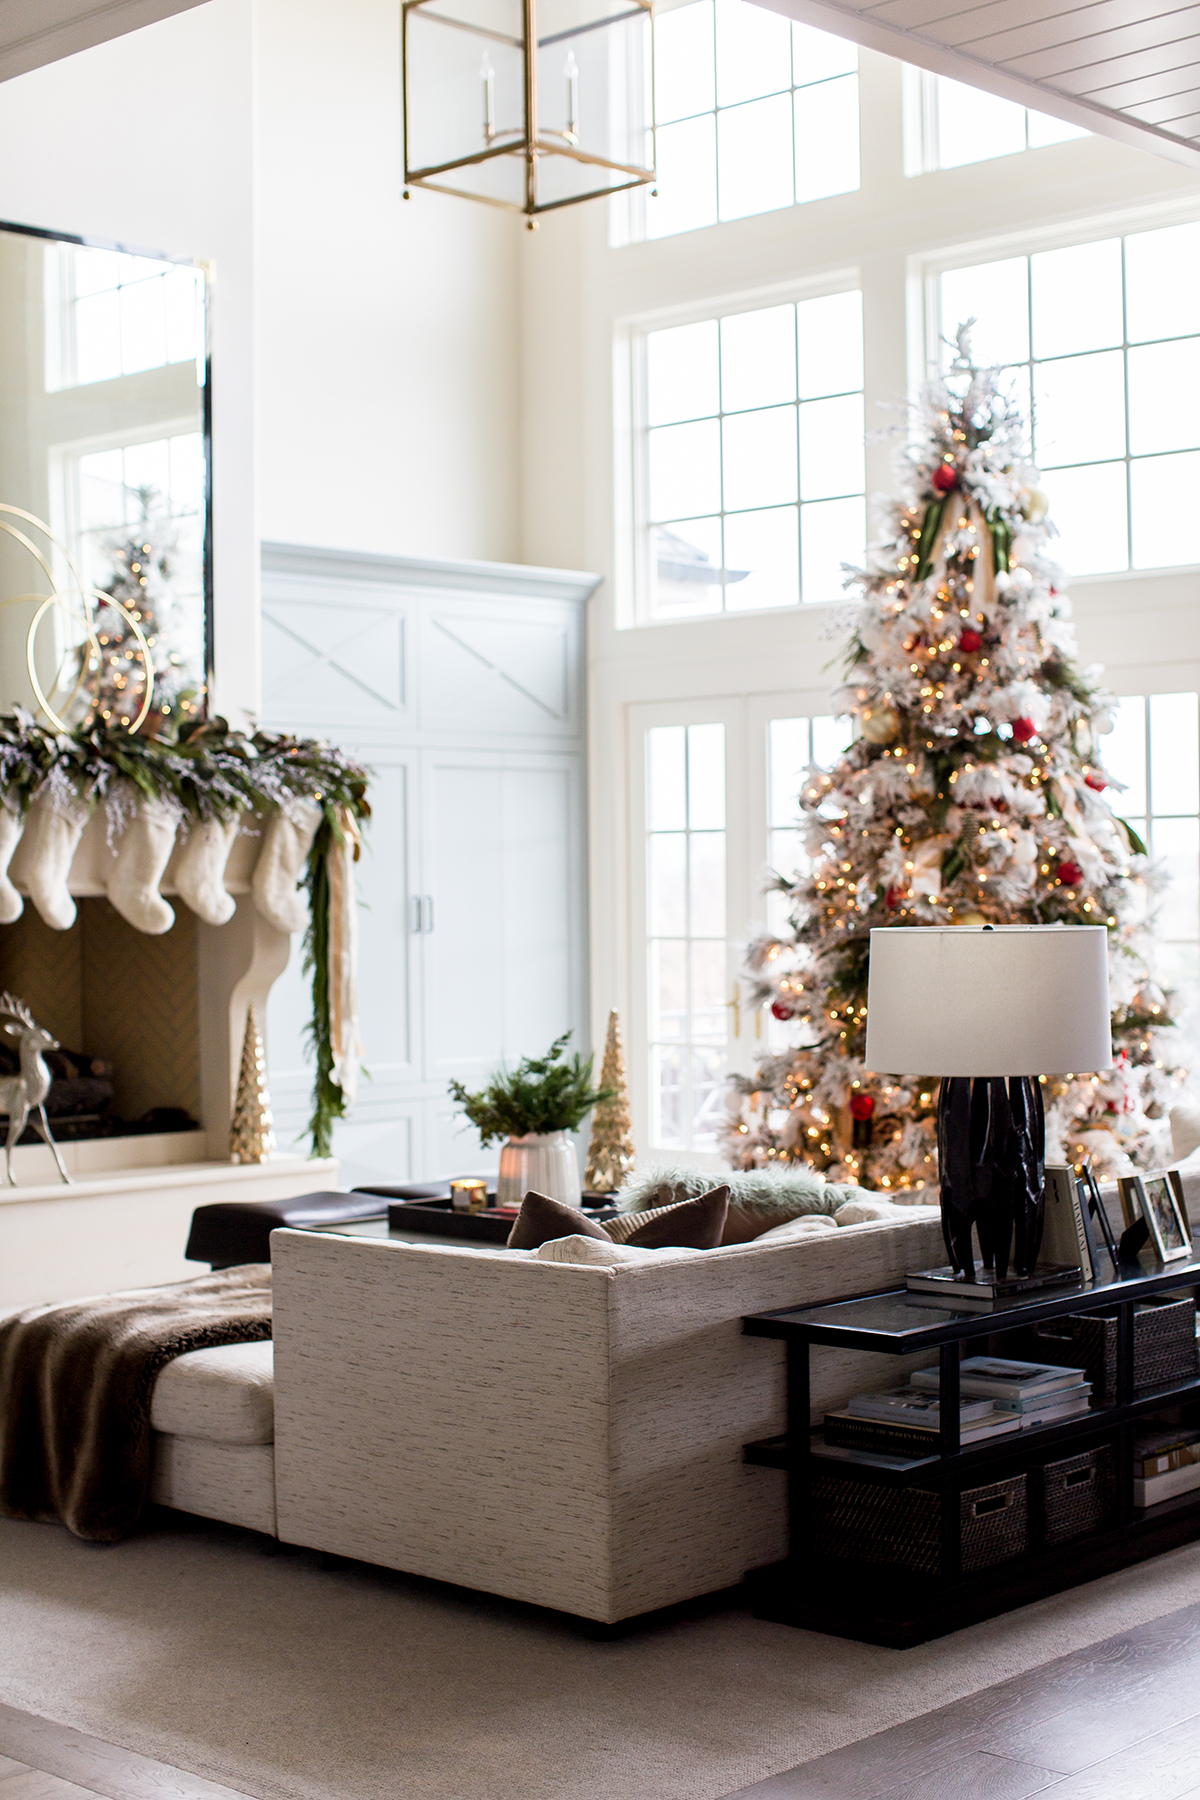 Our Home for Christmas – Ivory Lane